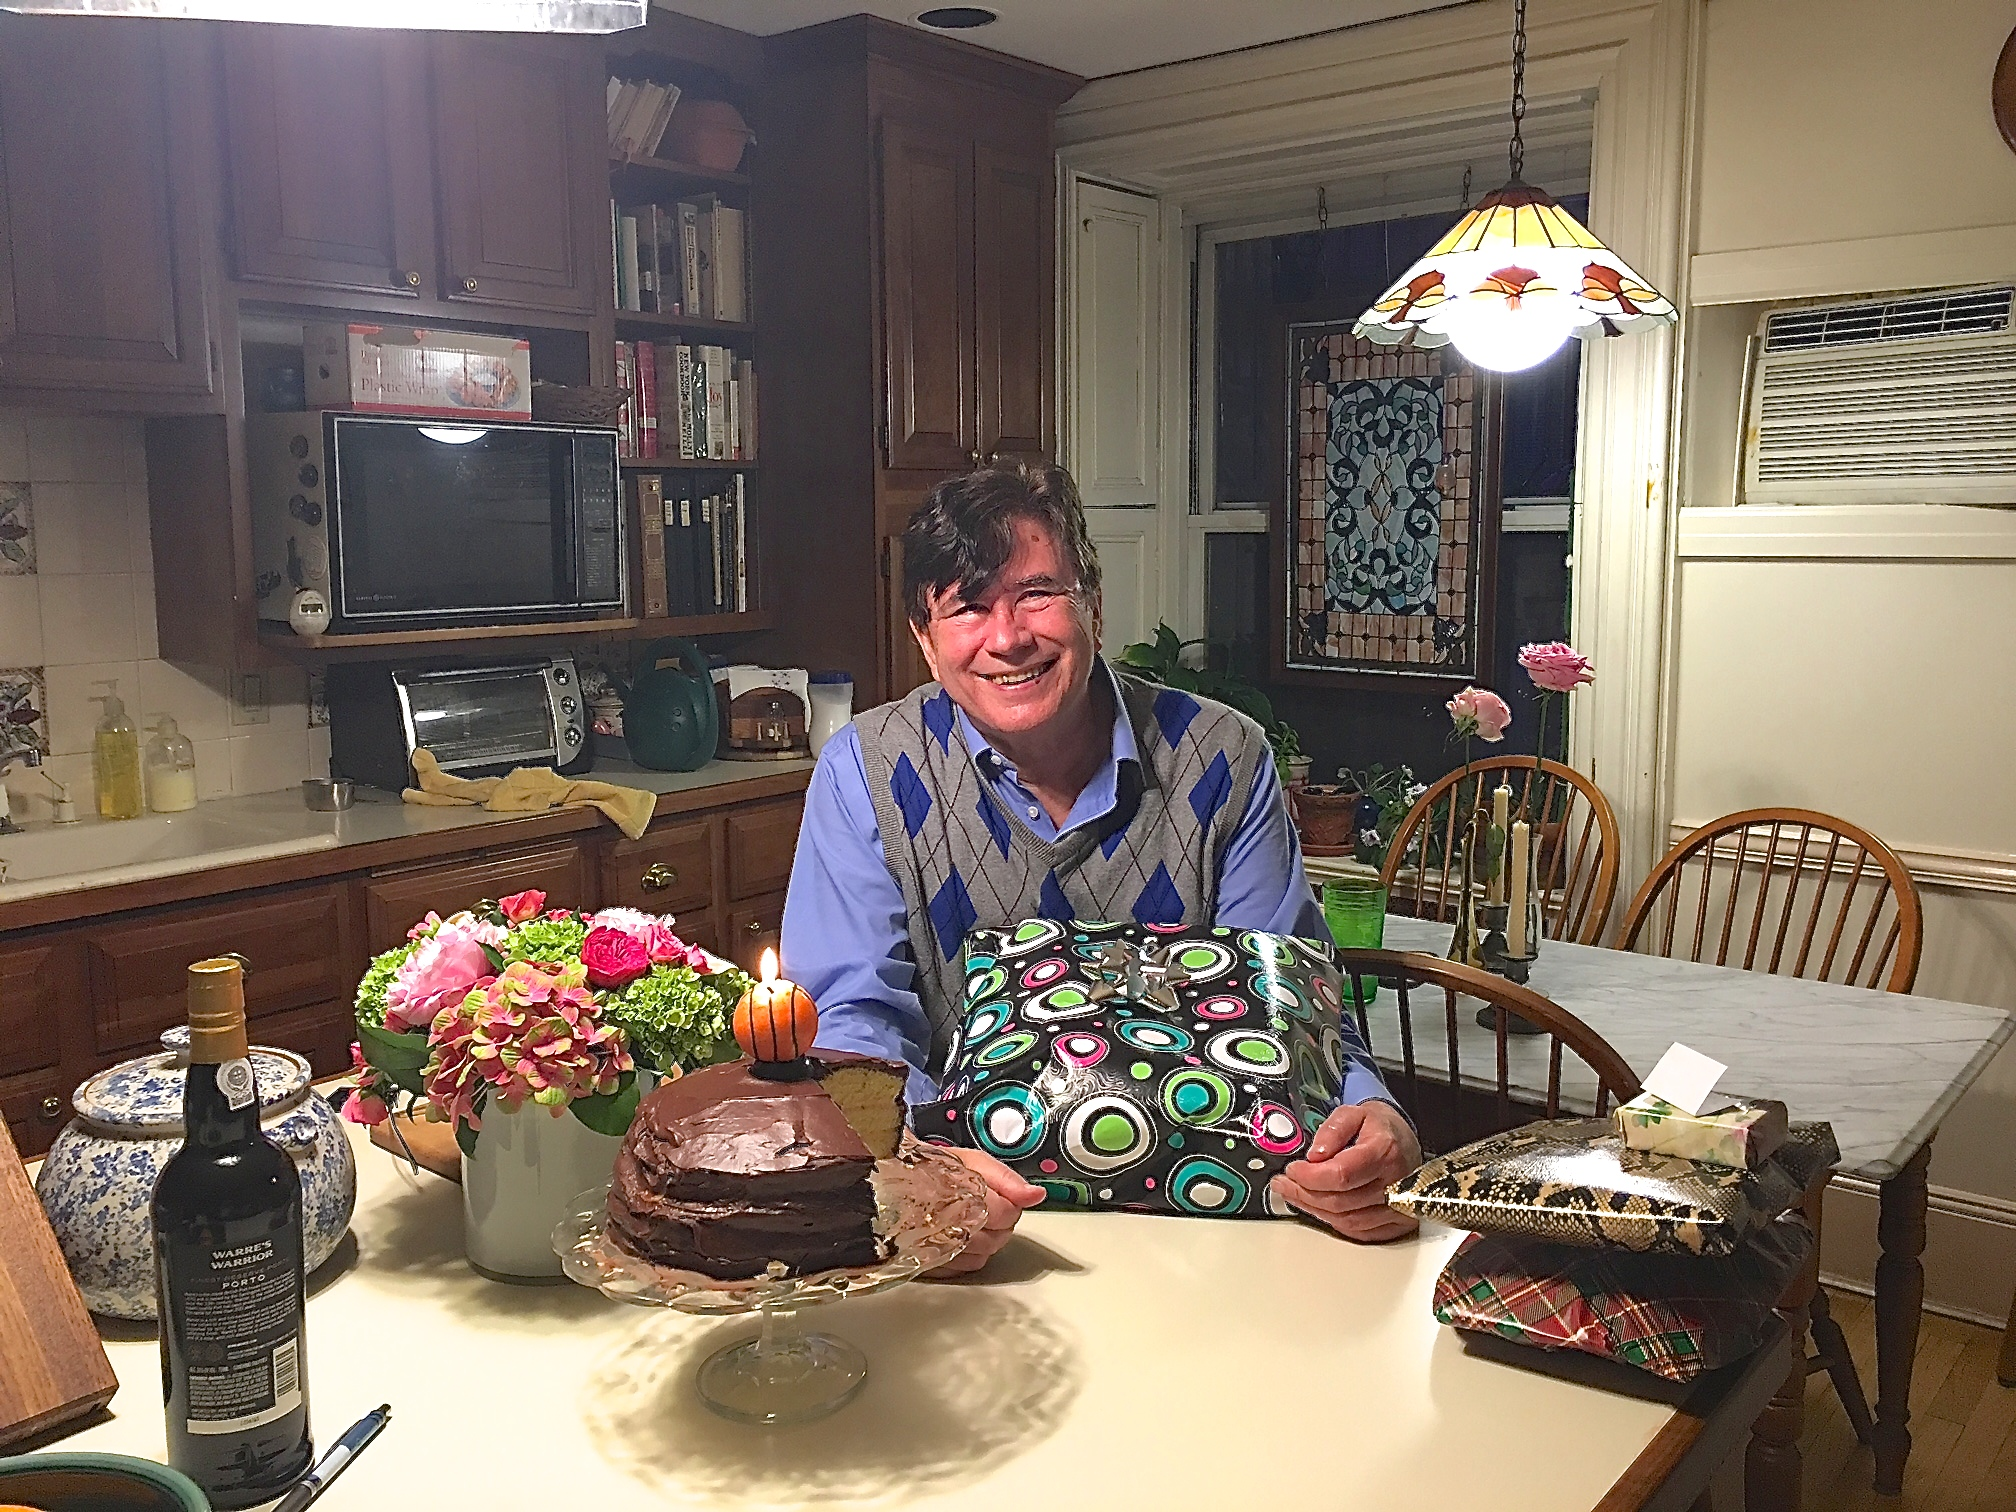 John on his birthday, May 13, 2016